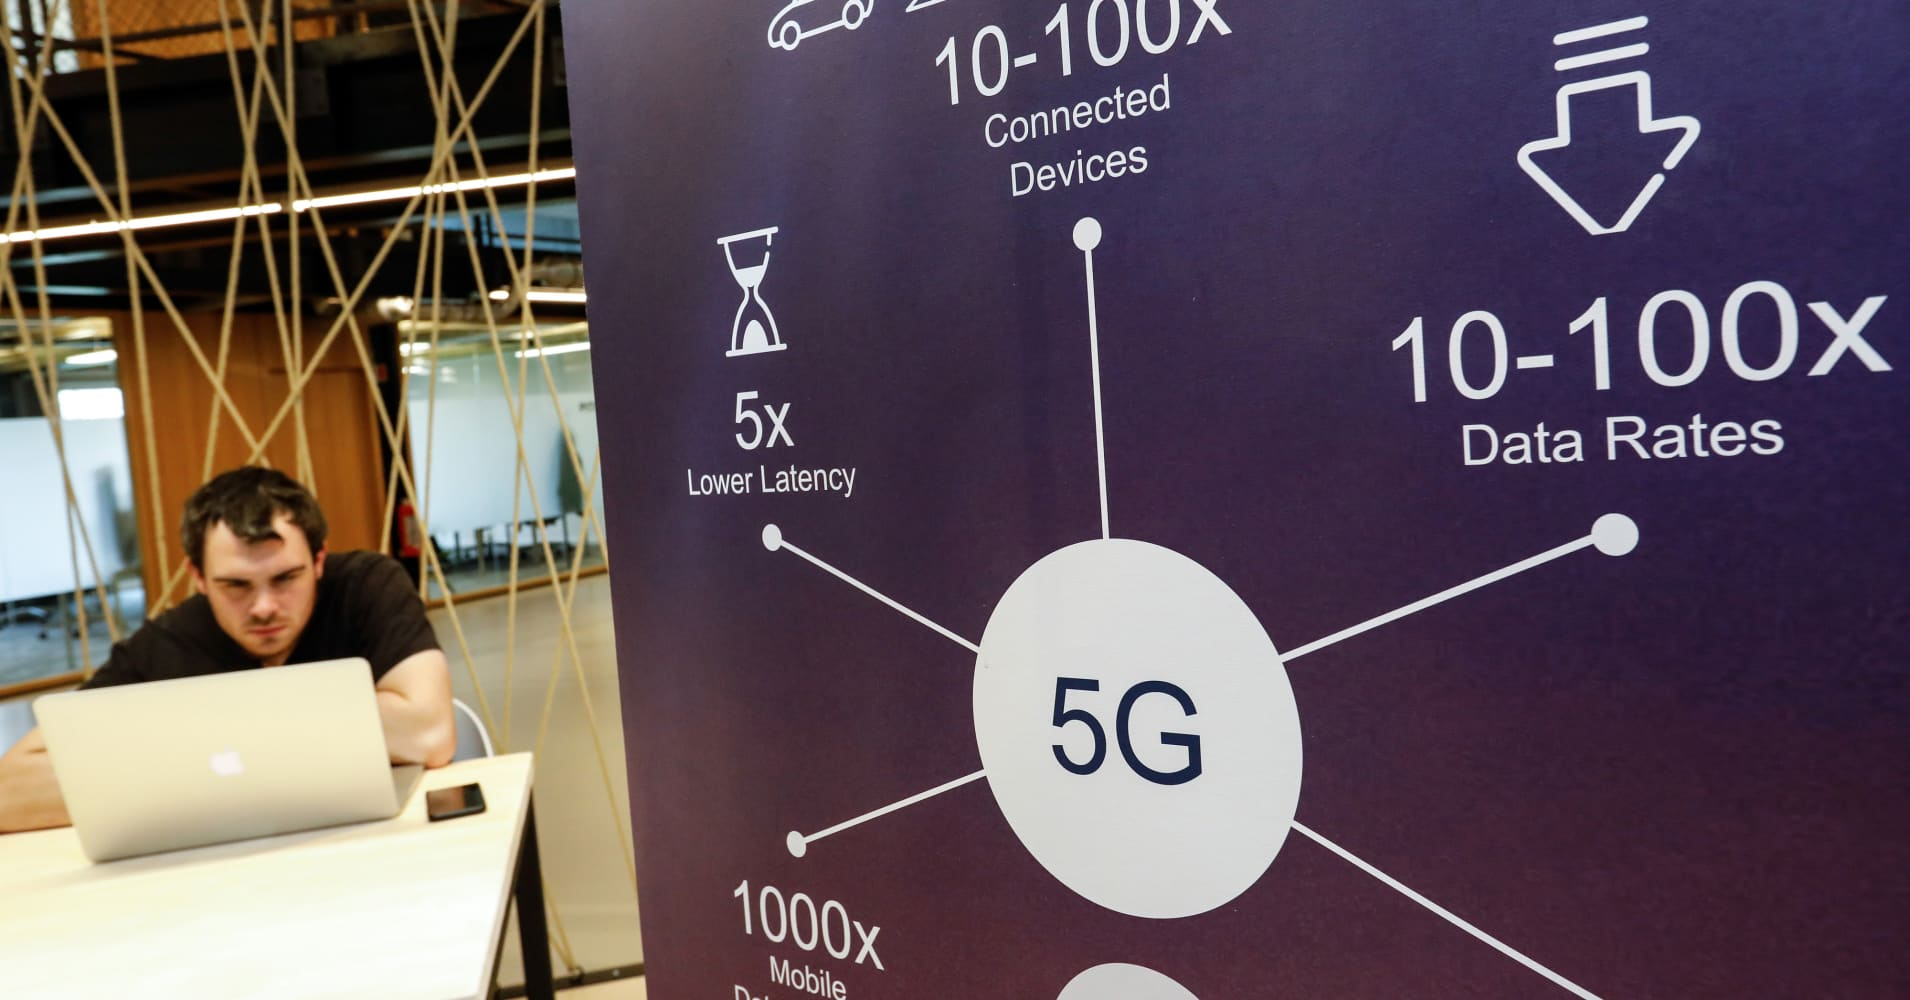 'There's zero chance that 5G is a ubiquitous technology' by 2021